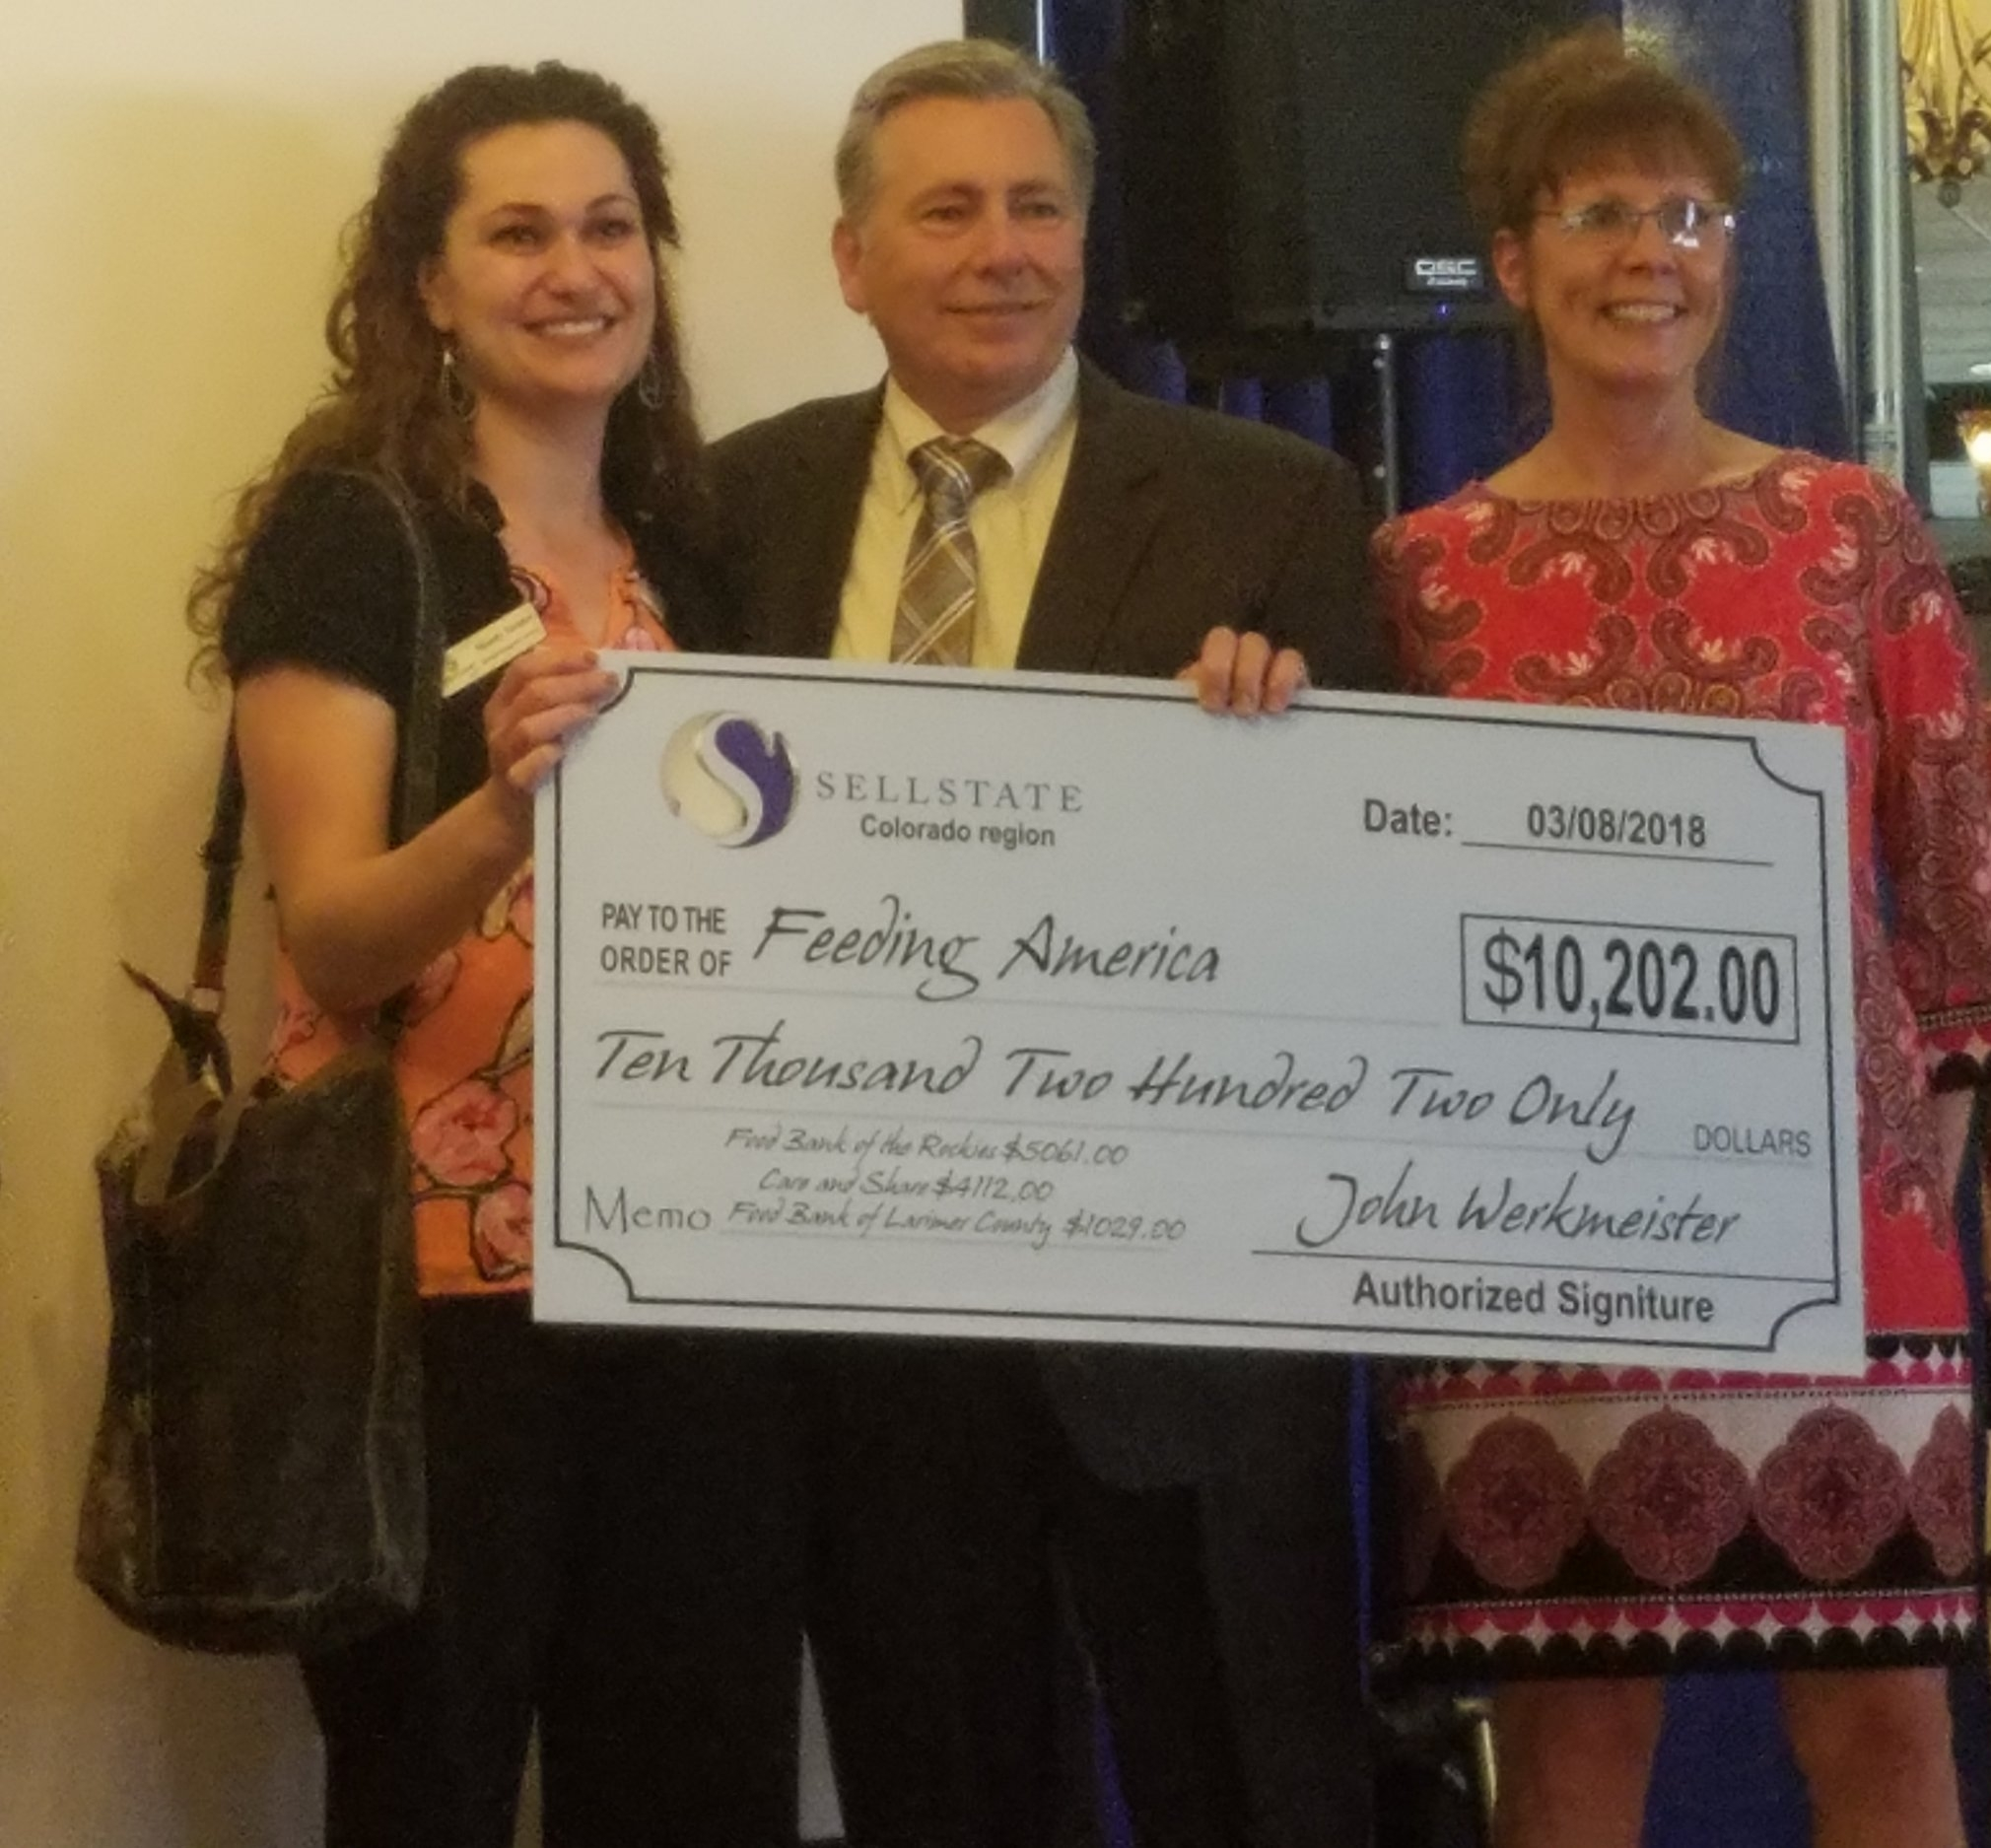 Sellstate Alliance Realty - Giving Back Check